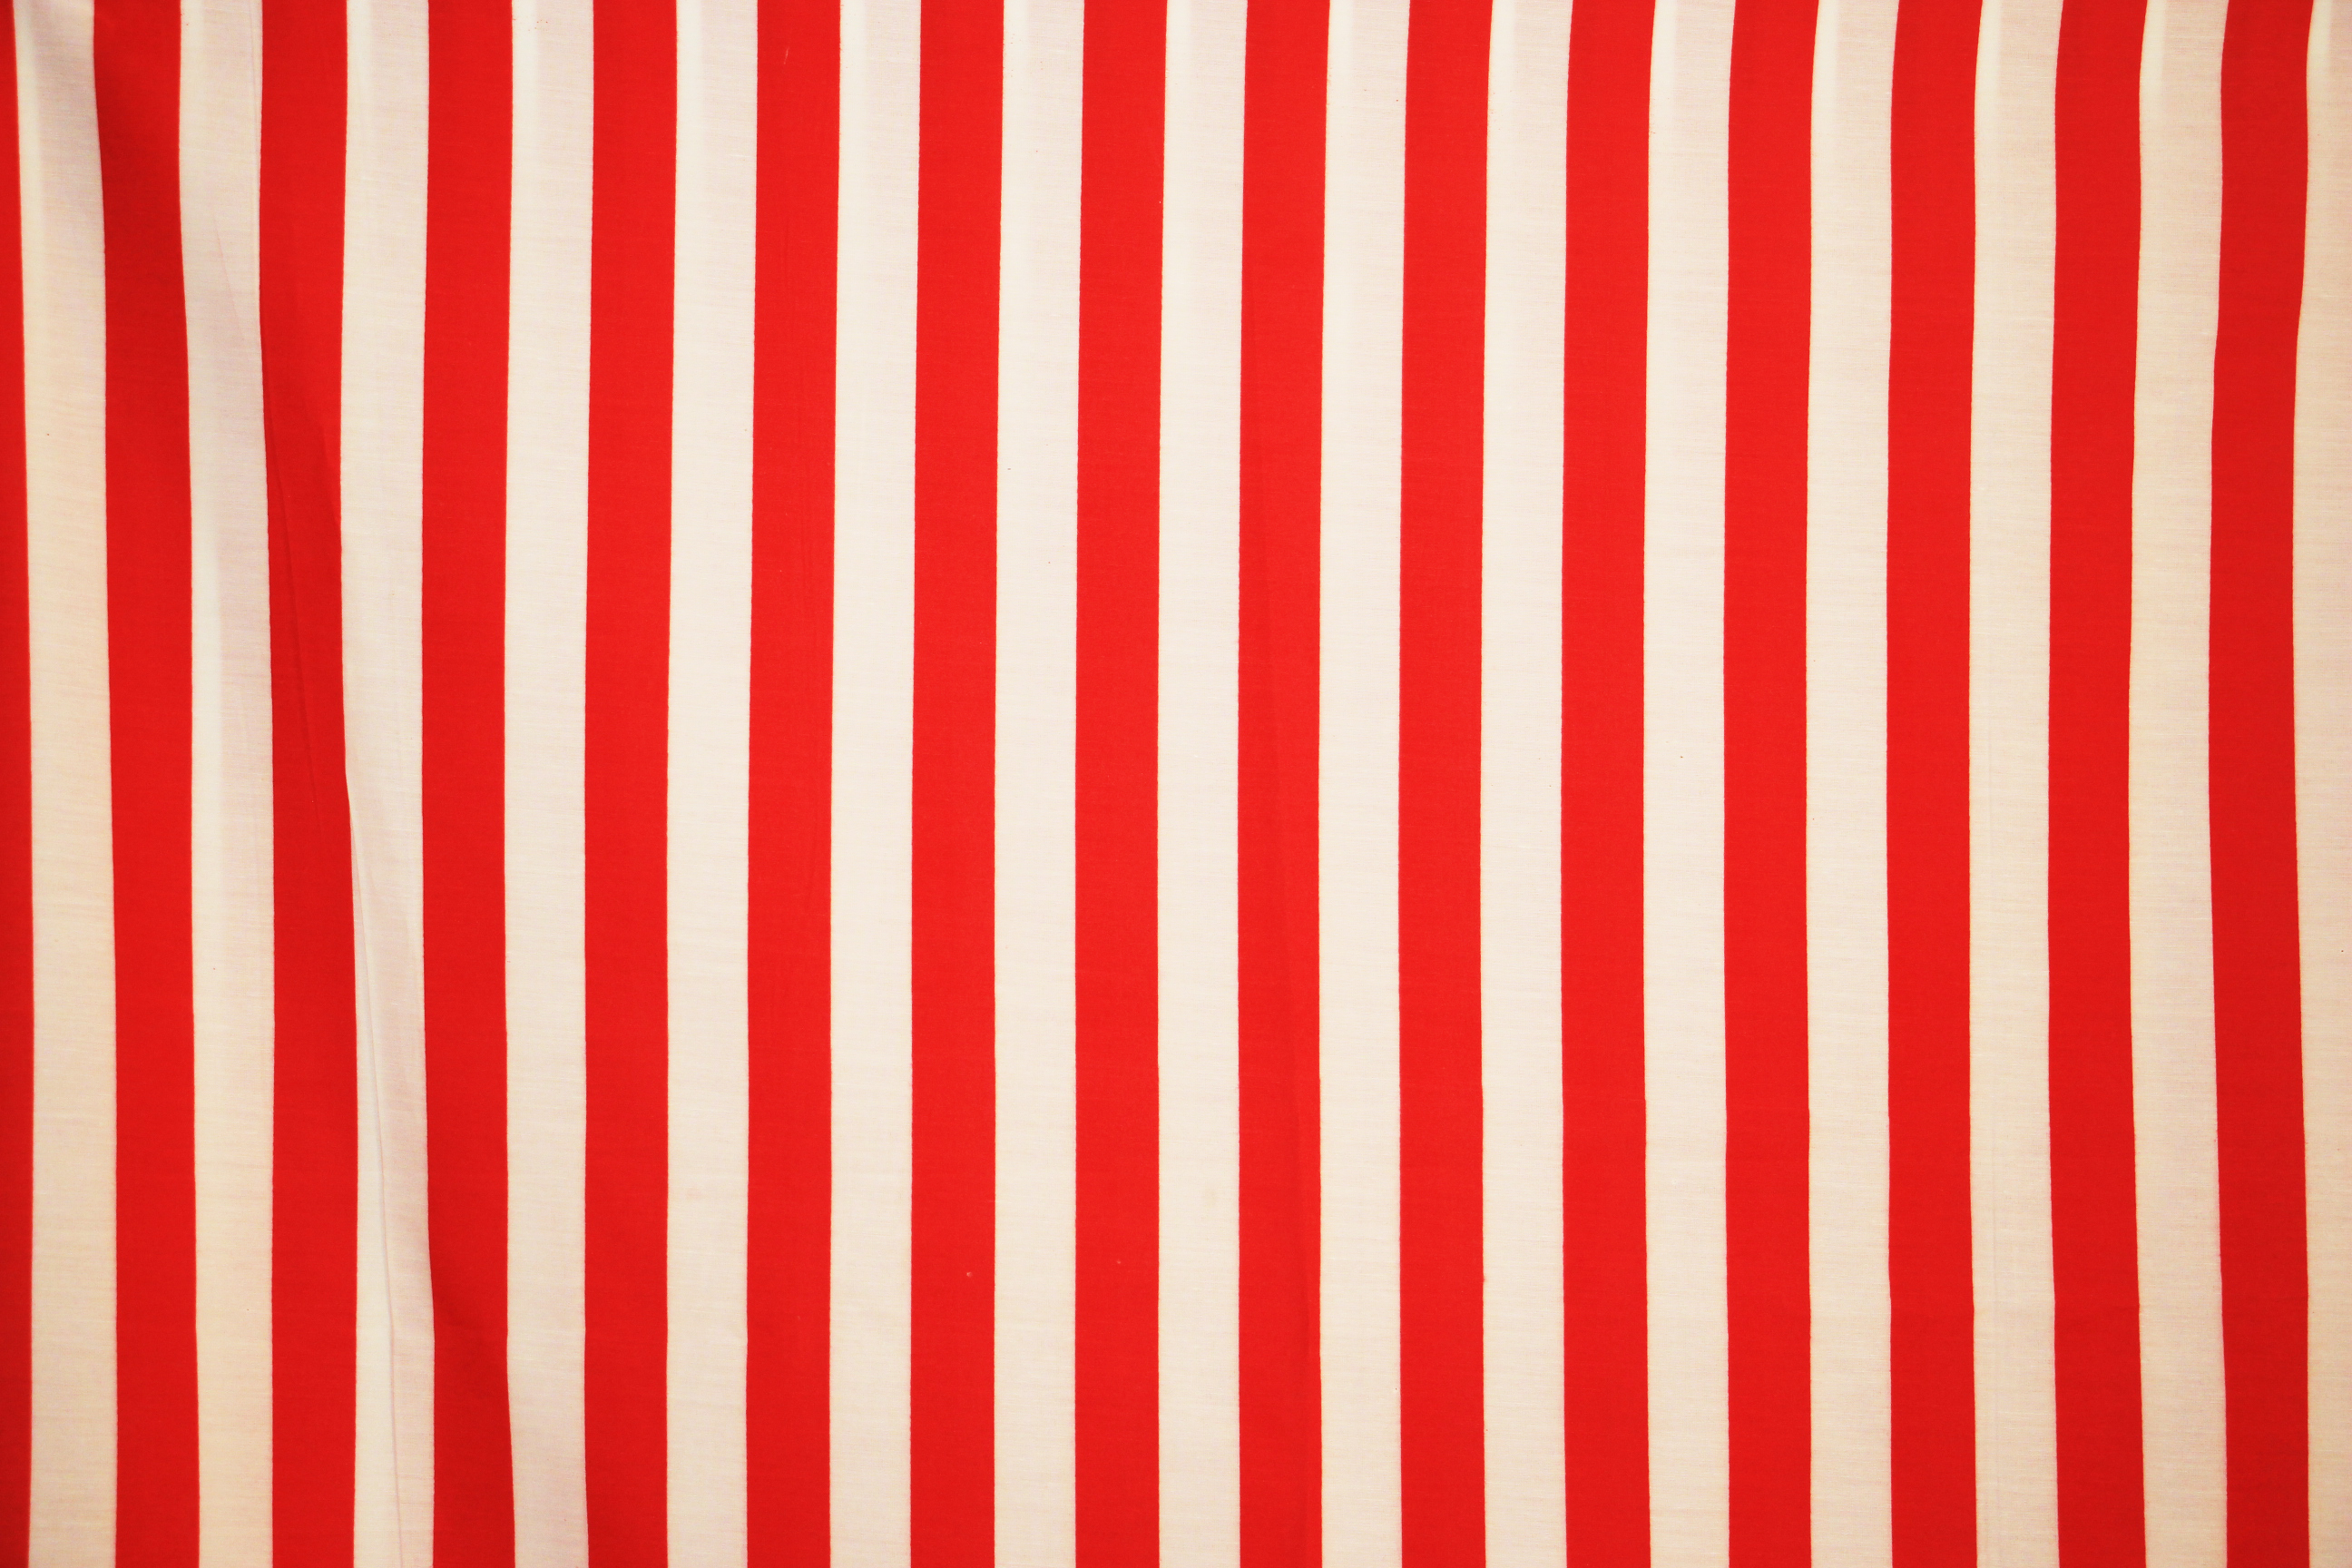 Red&White_Stripes